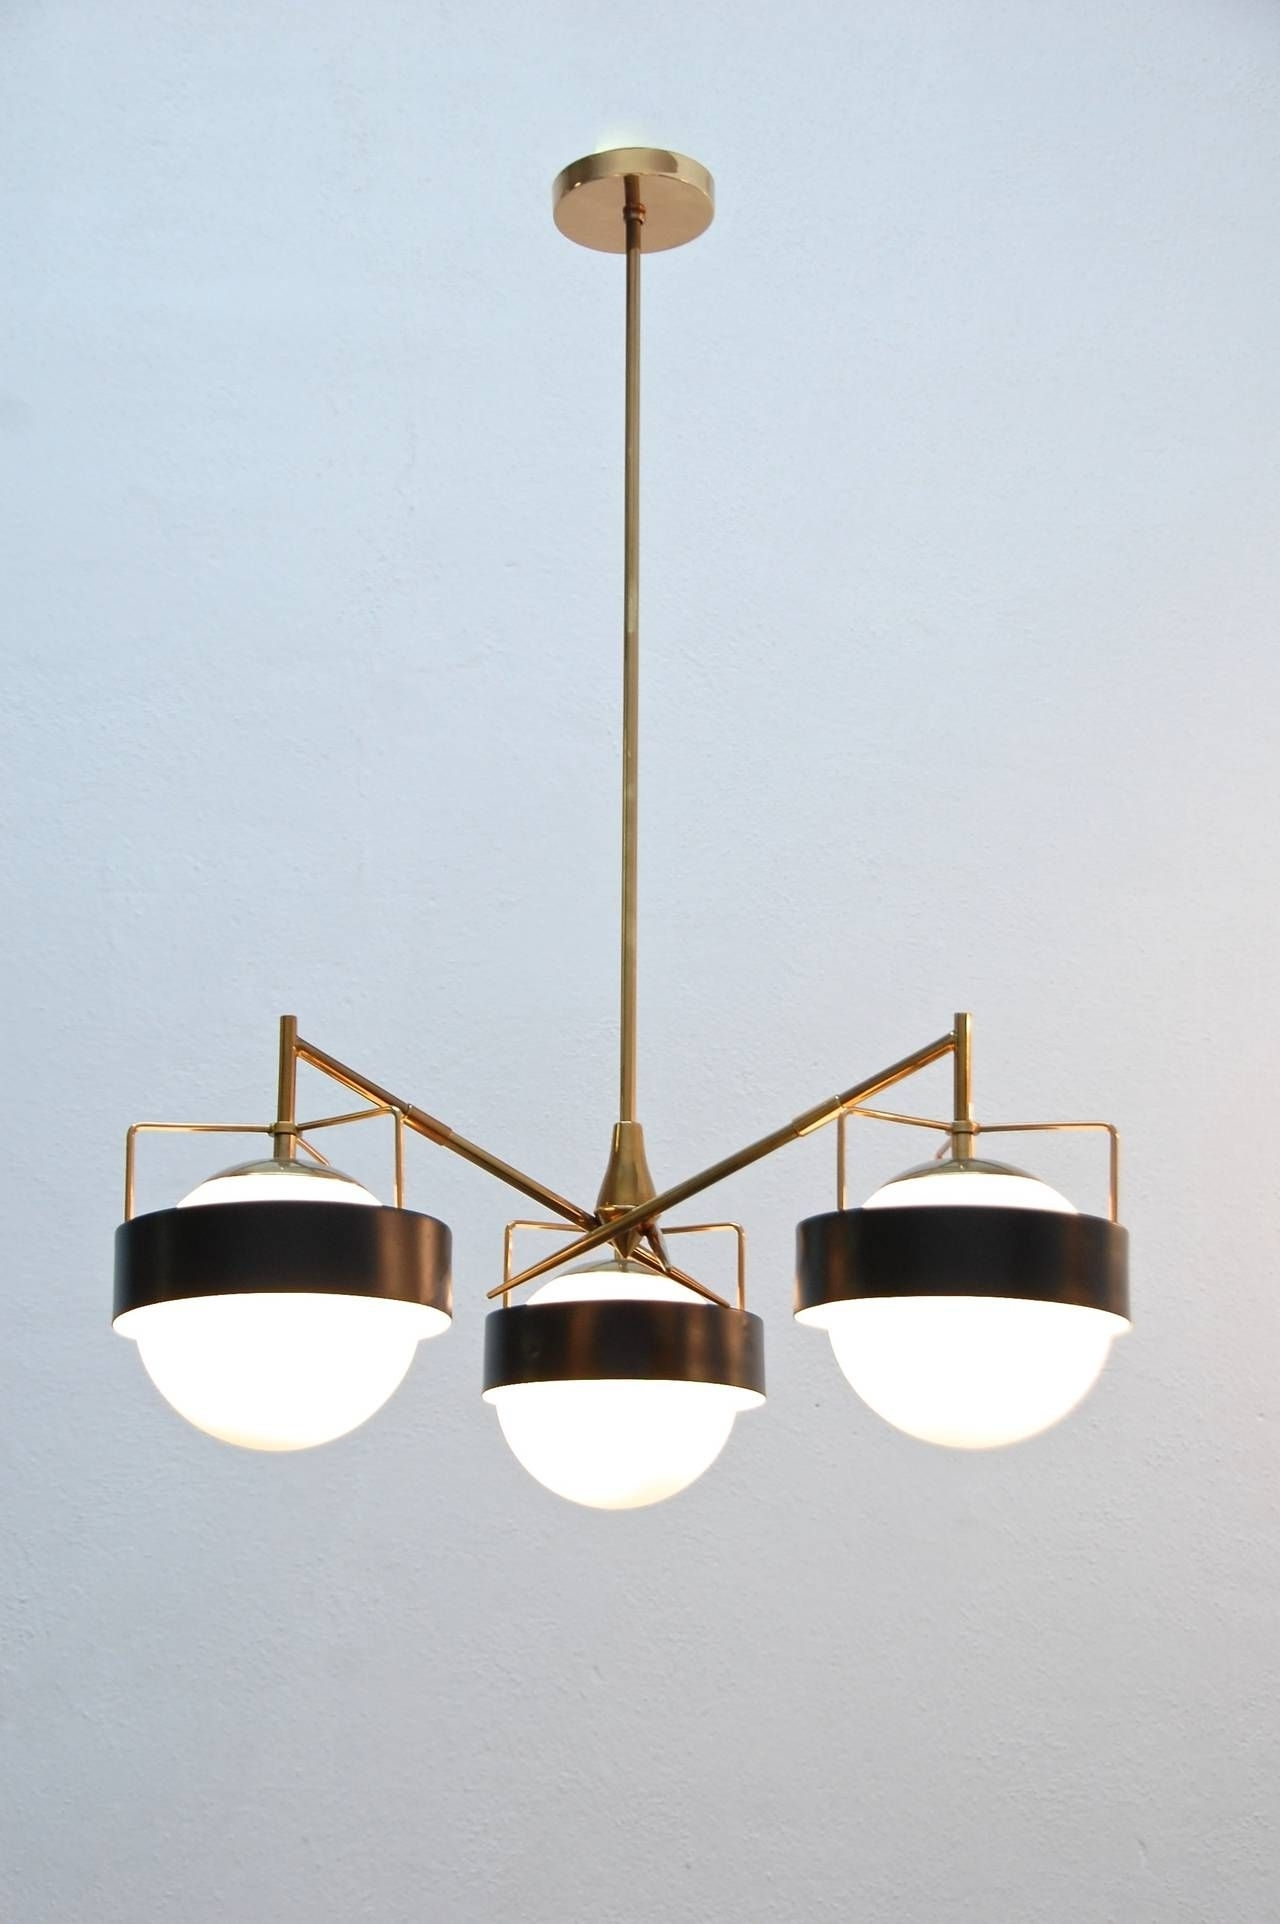 Modern Italian Chandeliers In Widely Used 1950S Italian Saturn Chandelier (View 12 of 20)